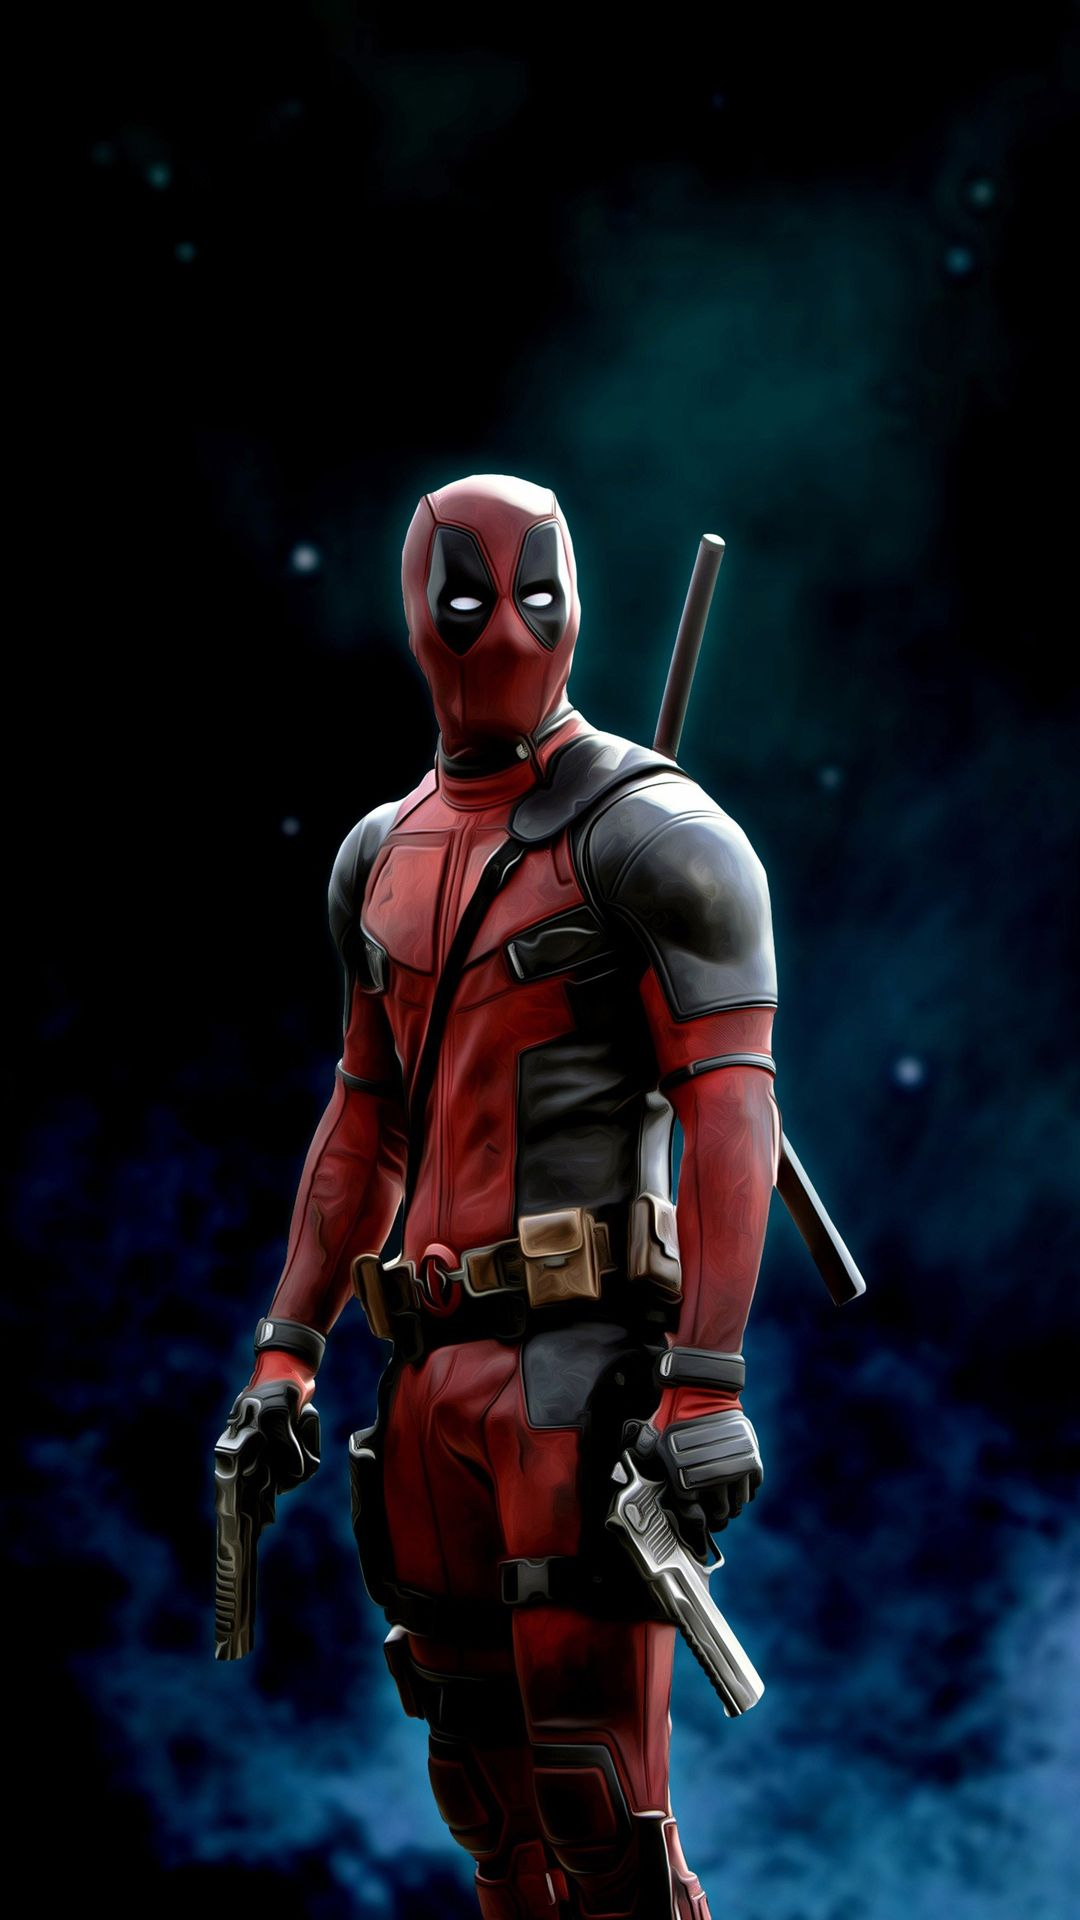 New Deadpool 4k Deadpool wallpaper, Deadpool character